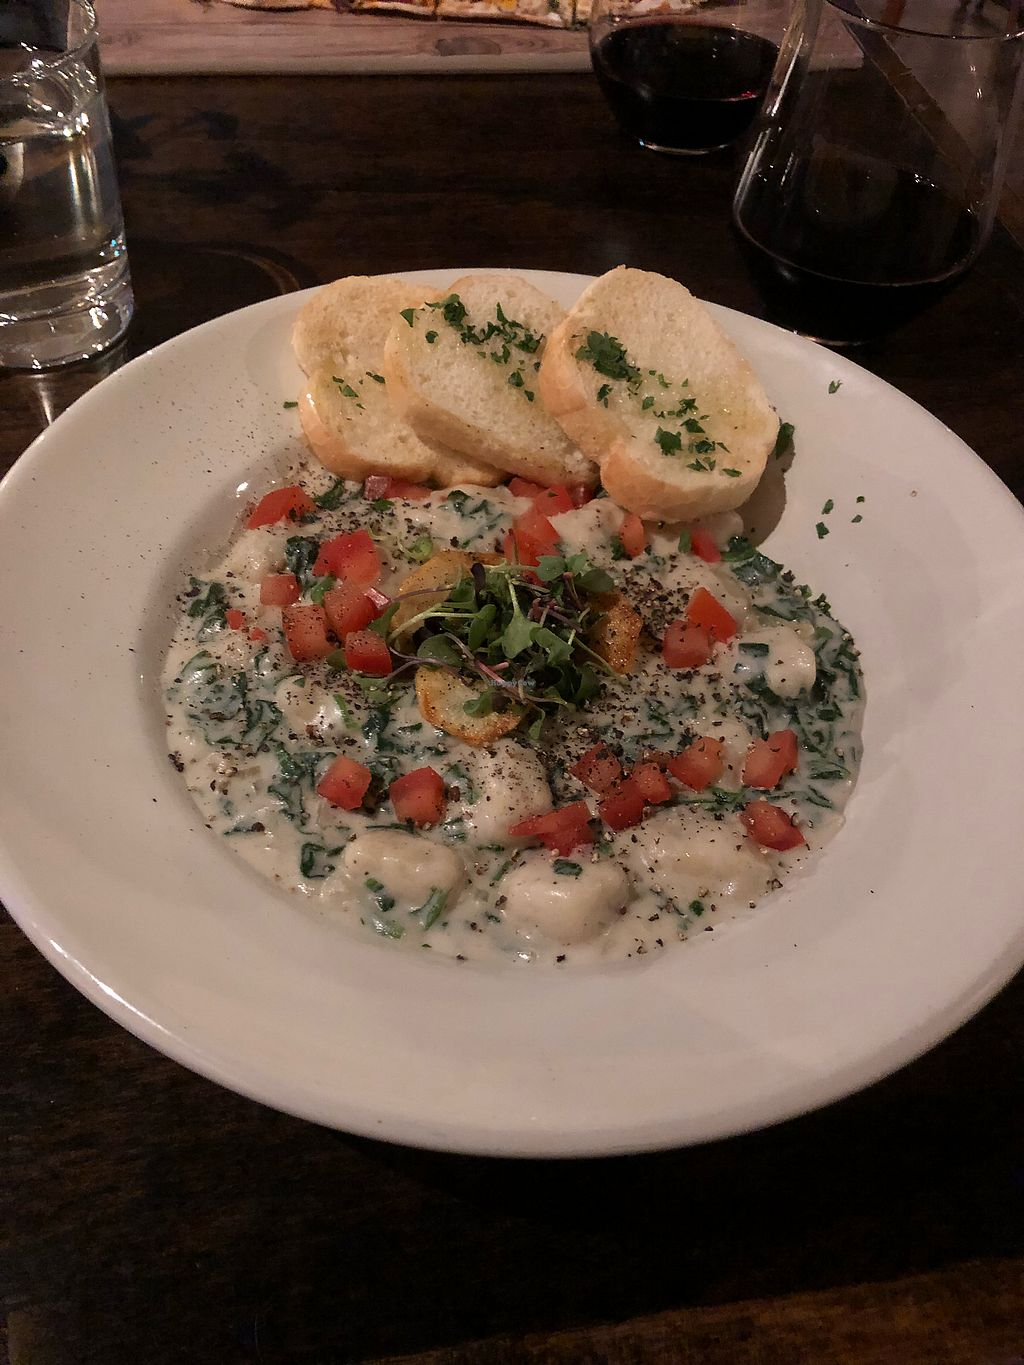 """Photo of Seasons Plant Based Bistro  by <a href=""""/members/profile/Levi"""">Levi</a> <br/>Gnocchi  <br/> January 7, 2018  - <a href='/contact/abuse/image/104318/344014'>Report</a>"""